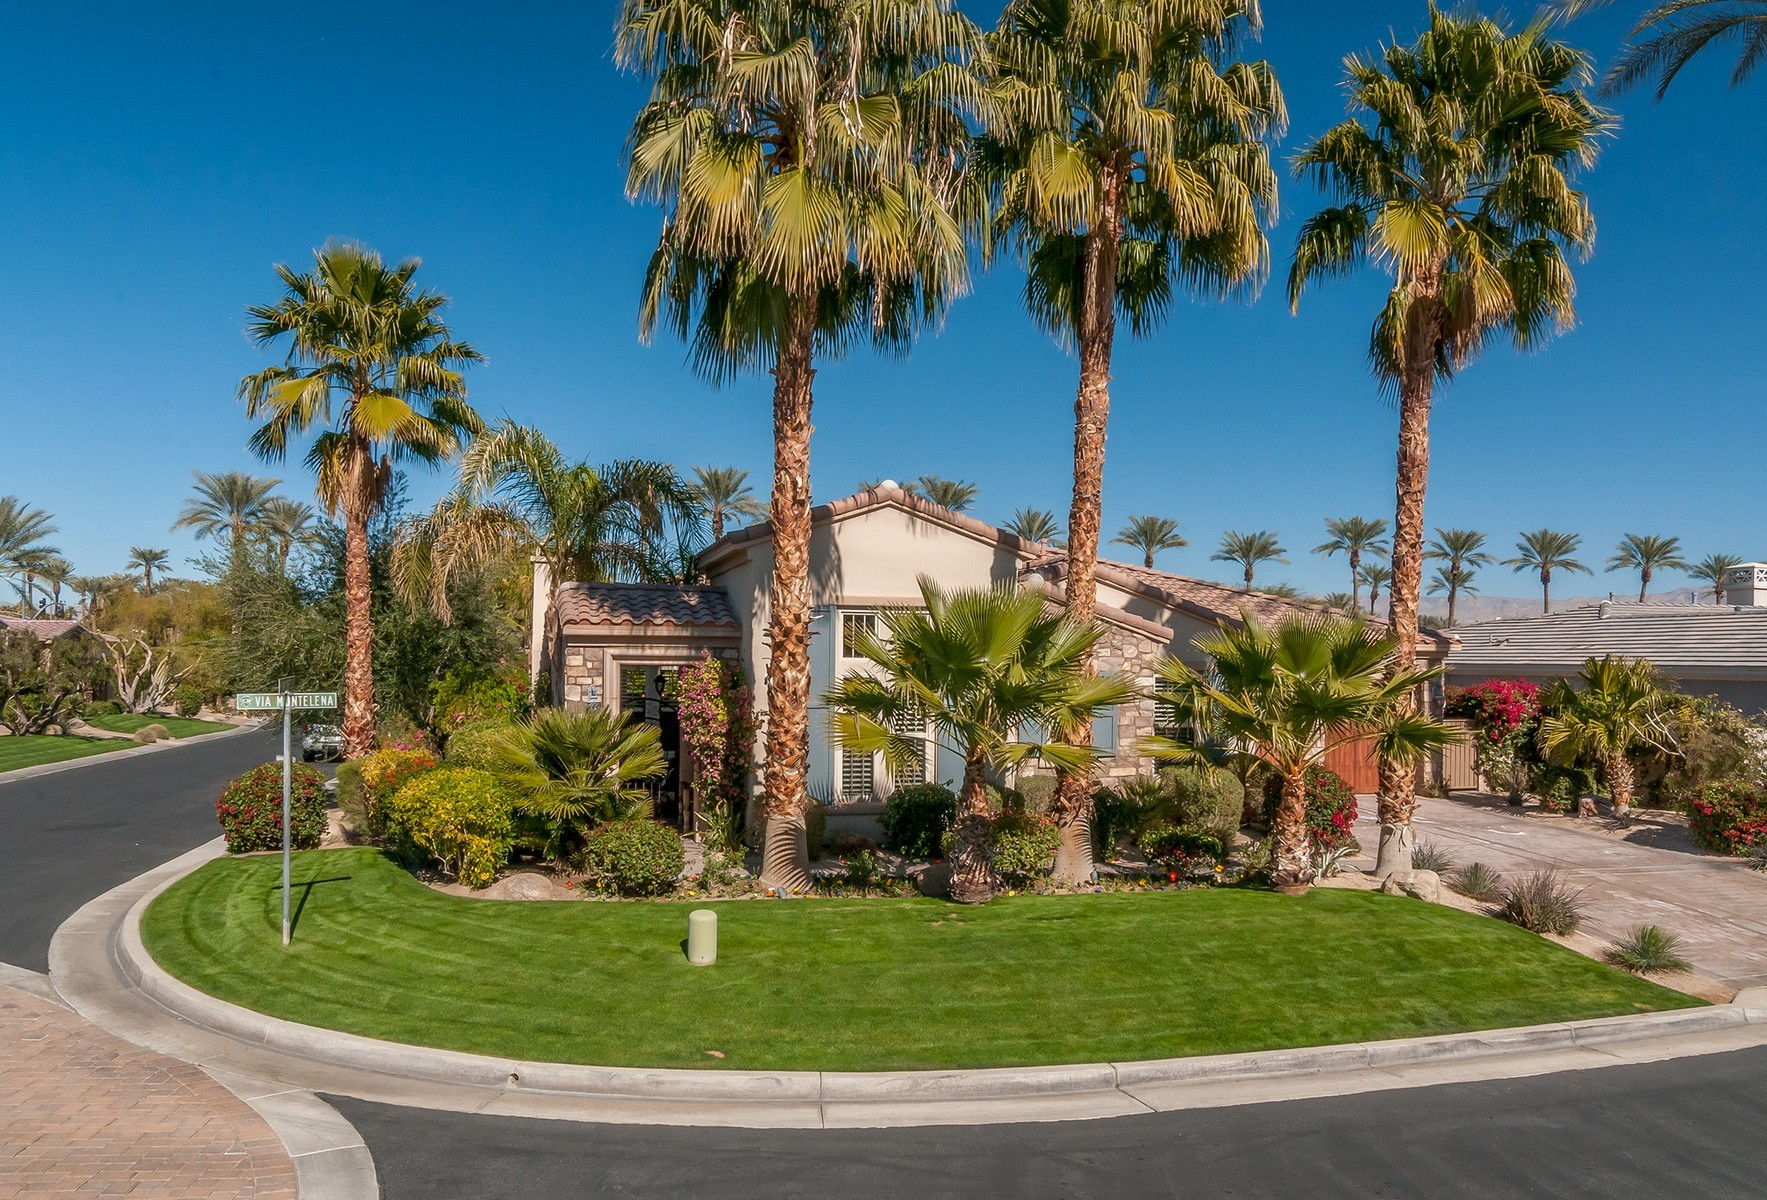 Single Family Home for Sale at 76046 Via Montelena Indian Wells, California 92210 United States